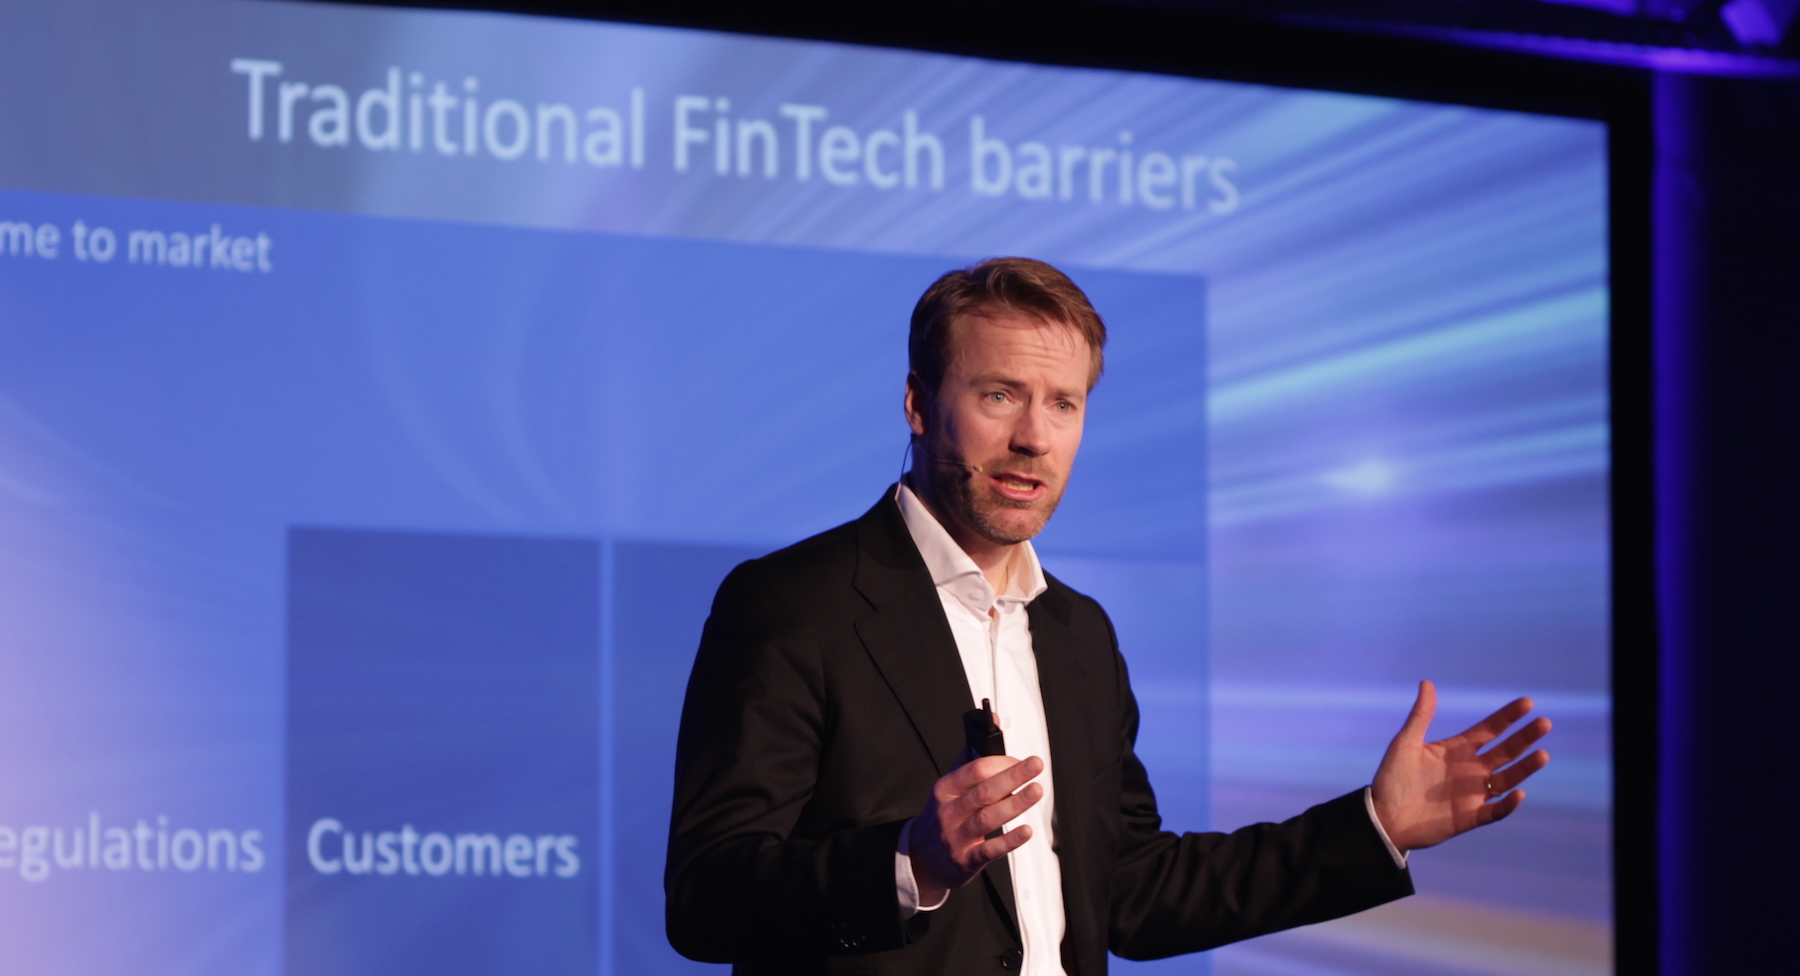 'A new love affair': banks meet fintech startups at Breaking Barriers